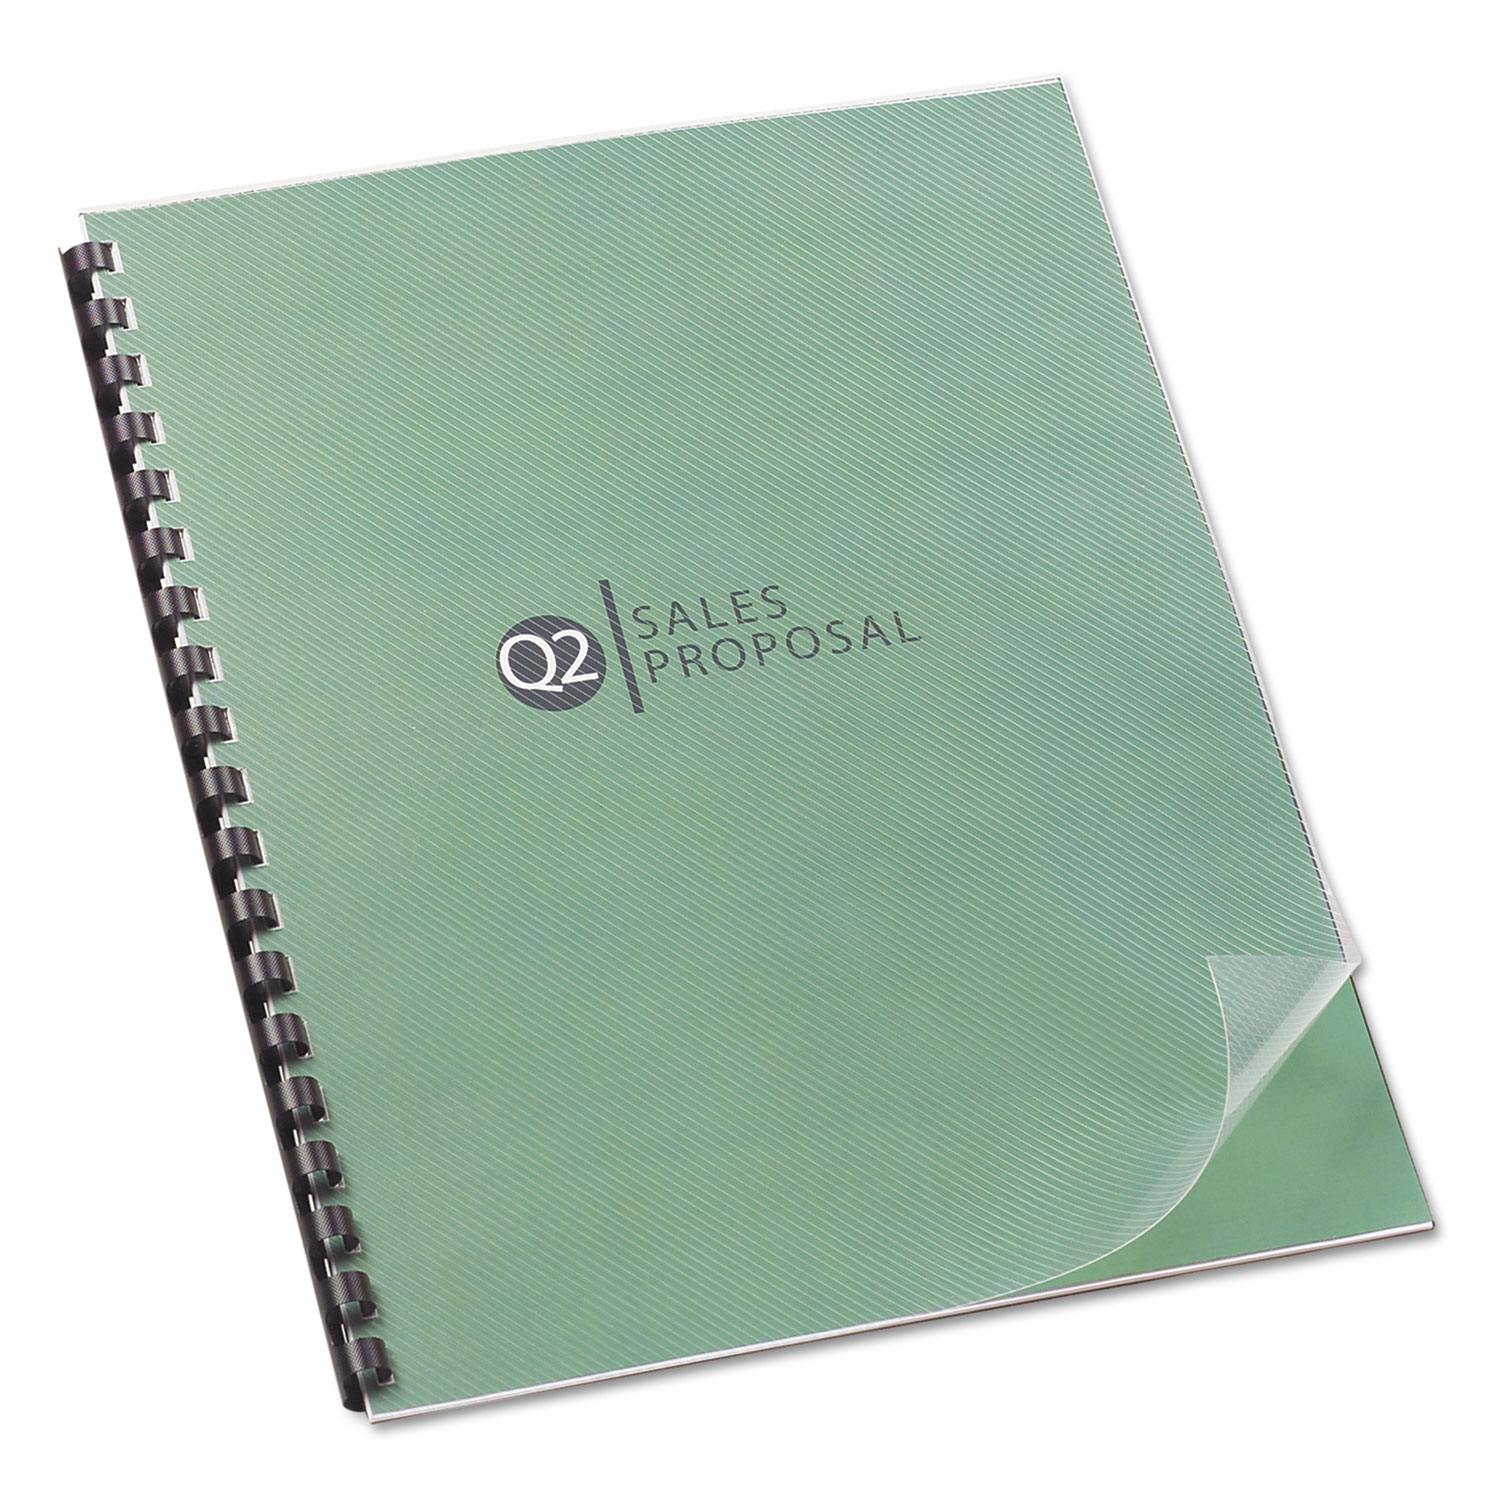 Design View Presentation Binding System Covers, 11 x 8 1/2, Clear, 25/Pack